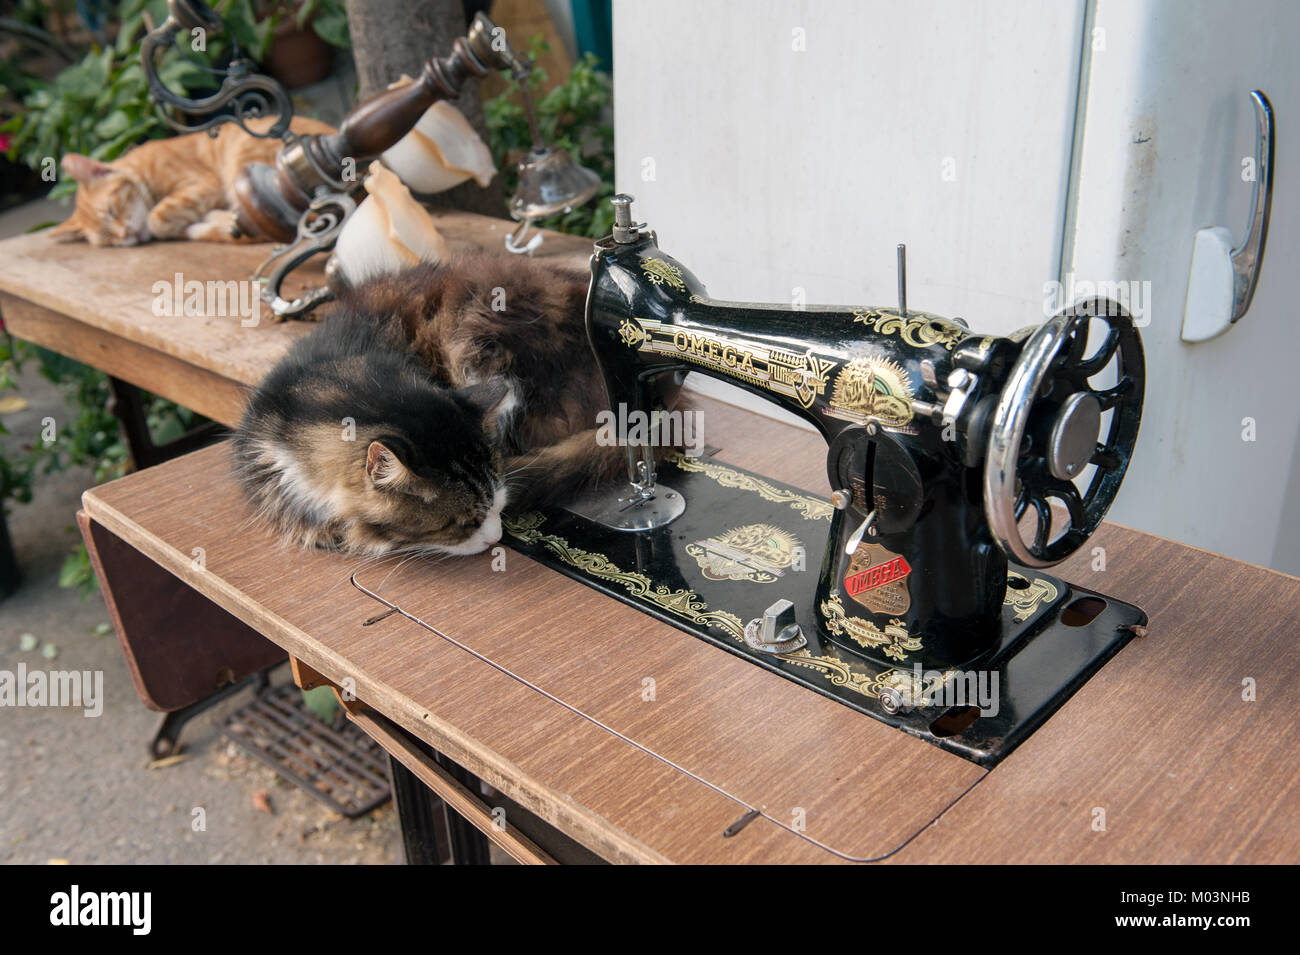 Cats sleeping next to antique sewing machine - Stock Image